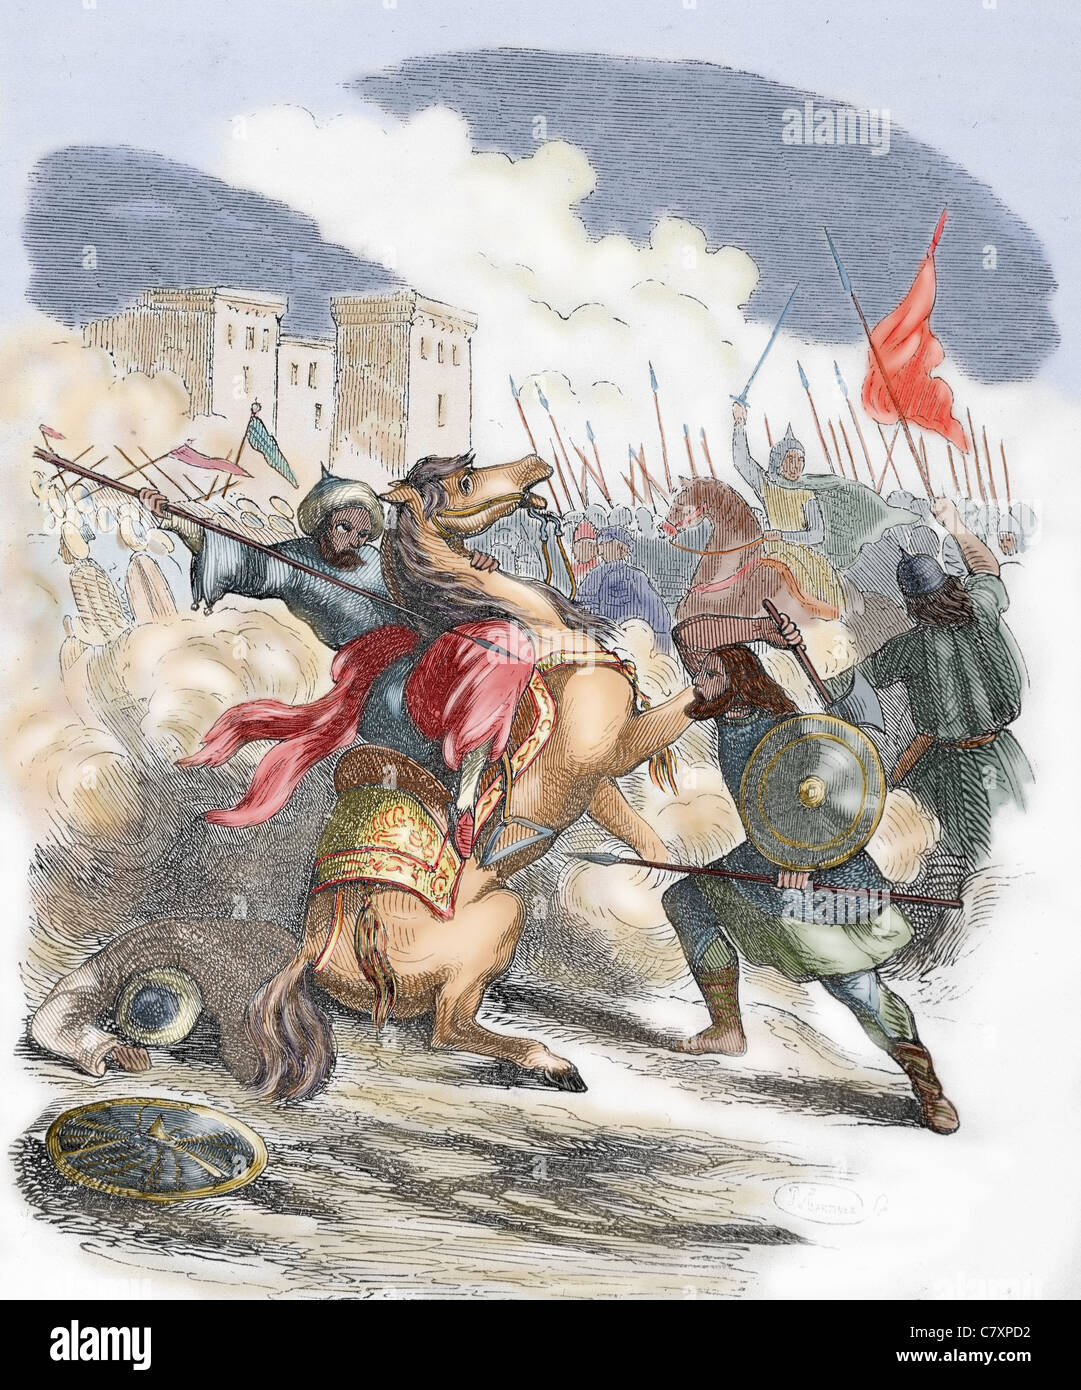 Sancho VII the Strong (1154-1234). King of Navarre (1194-1234). Battle. Colored engraving. - Stock Image